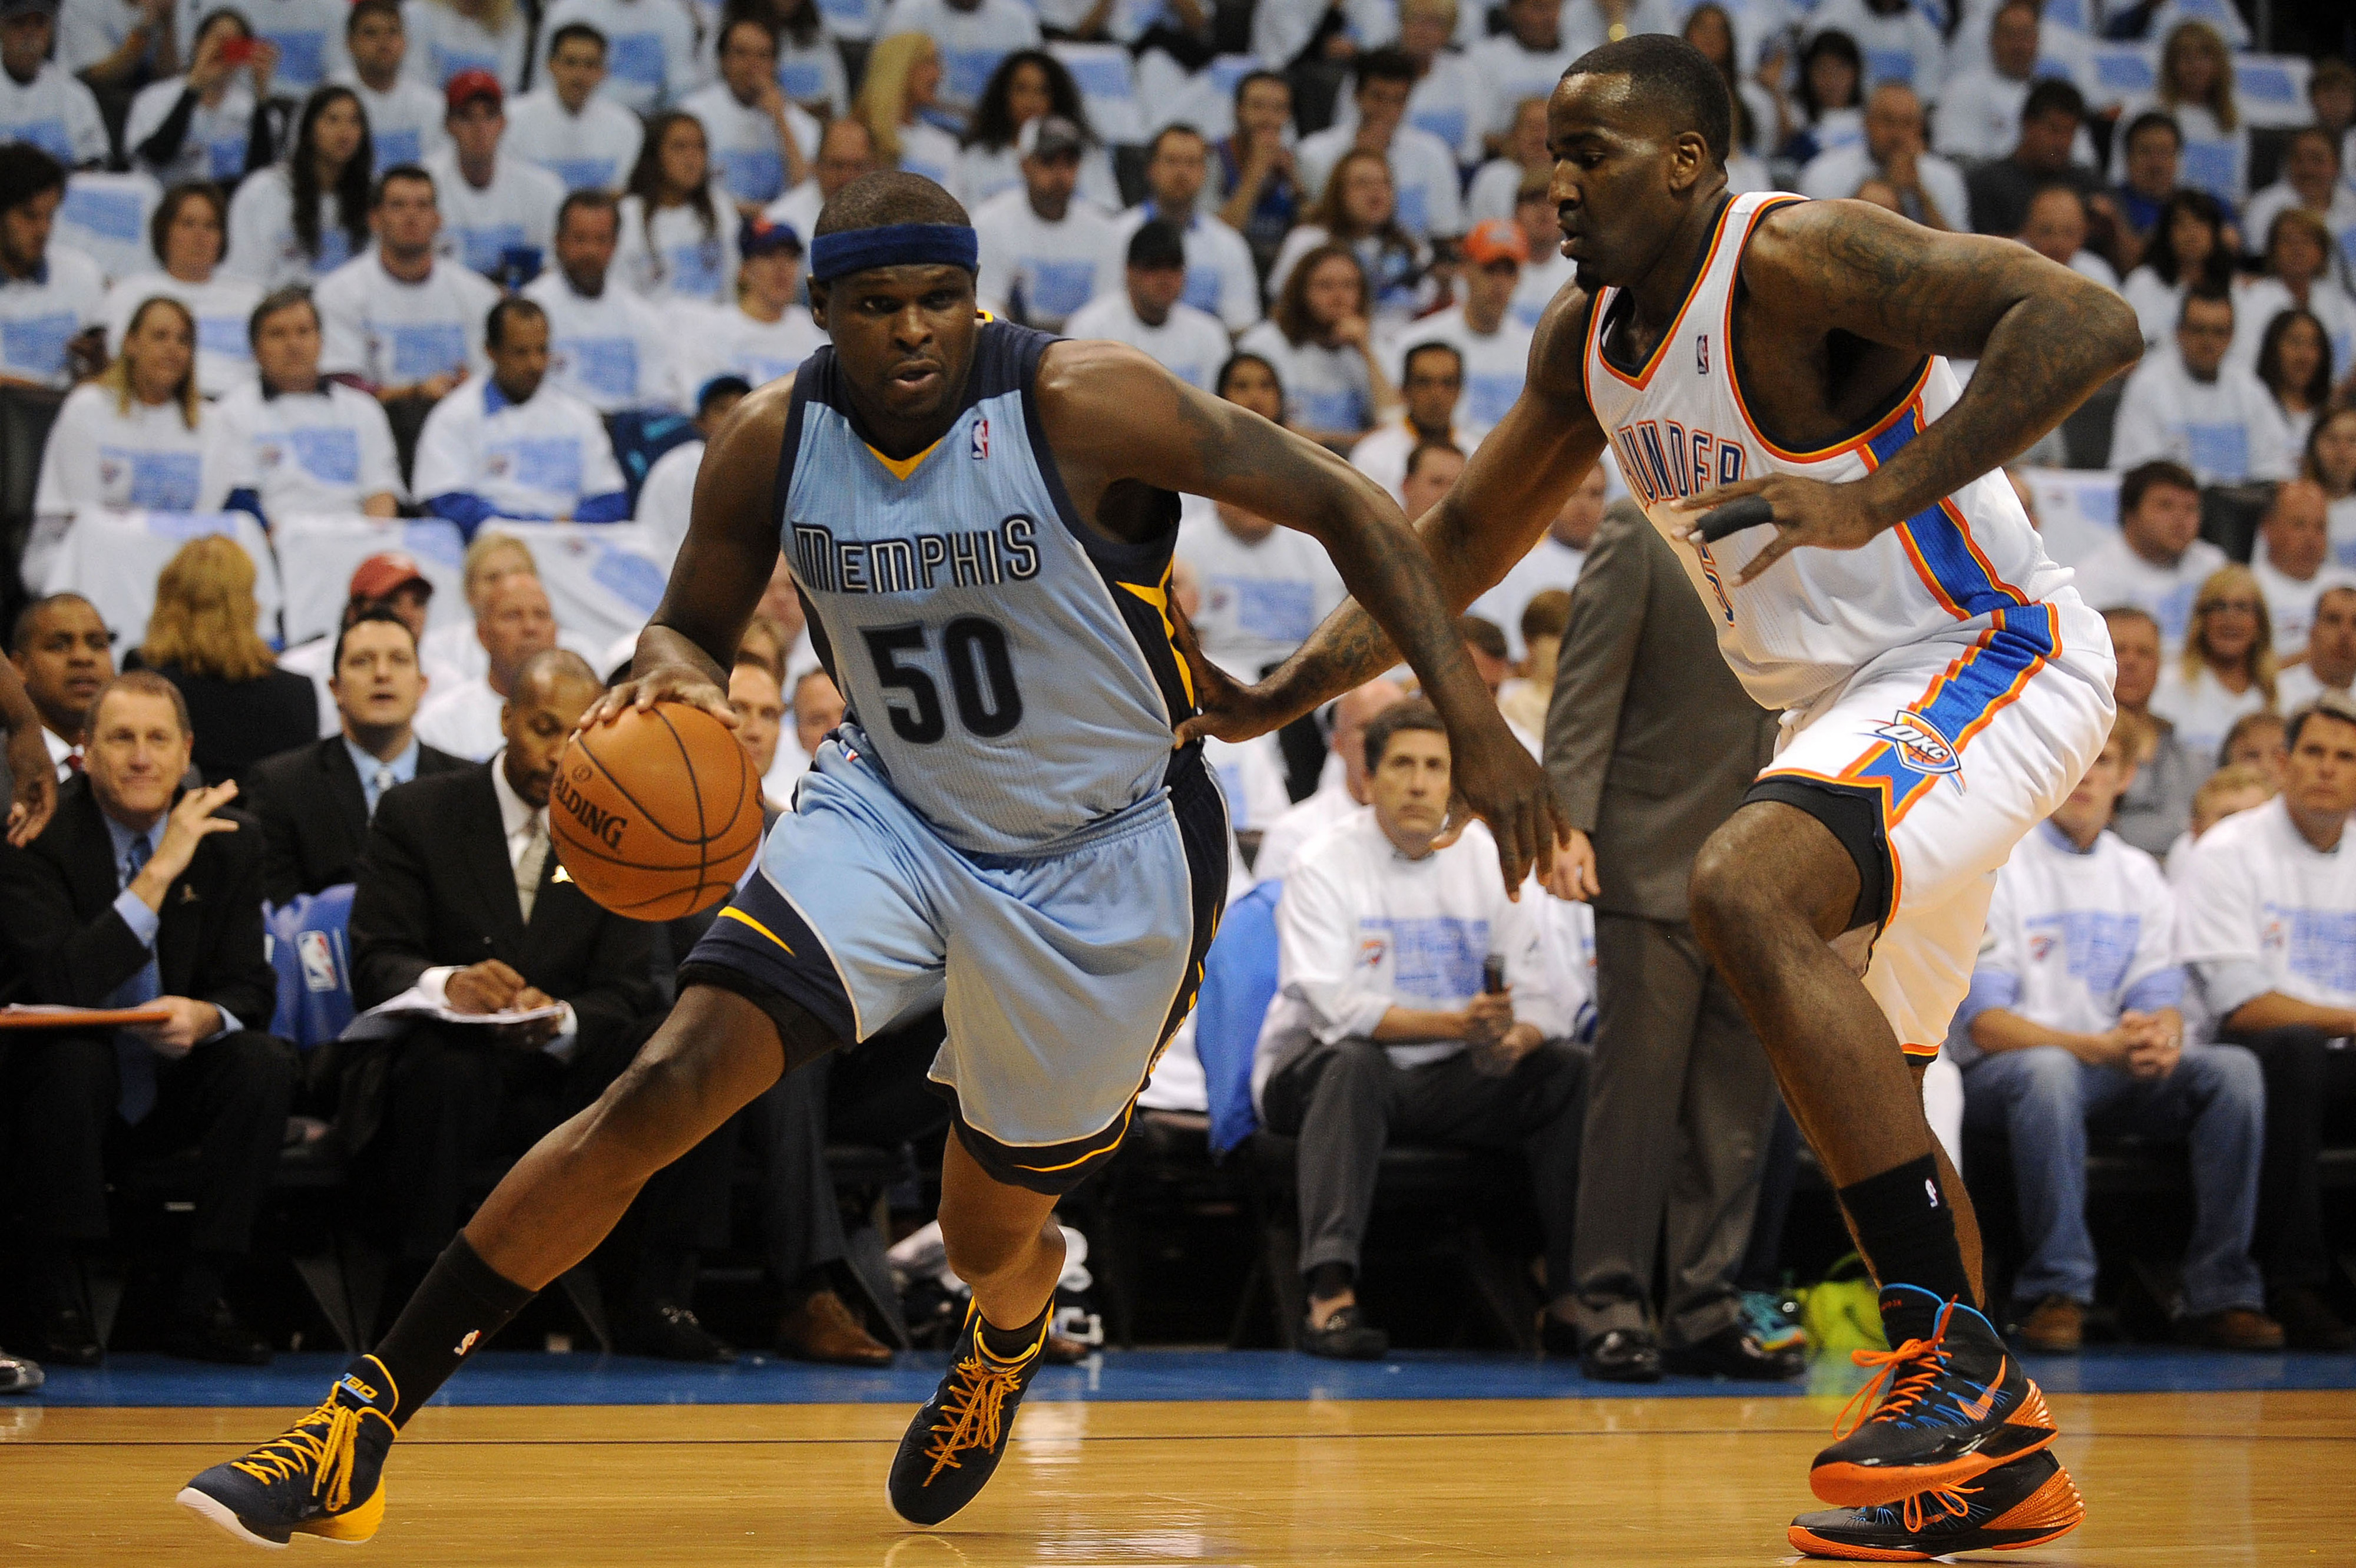 How can Z-Bo keep it going? Listen in to GBBLive and find out!